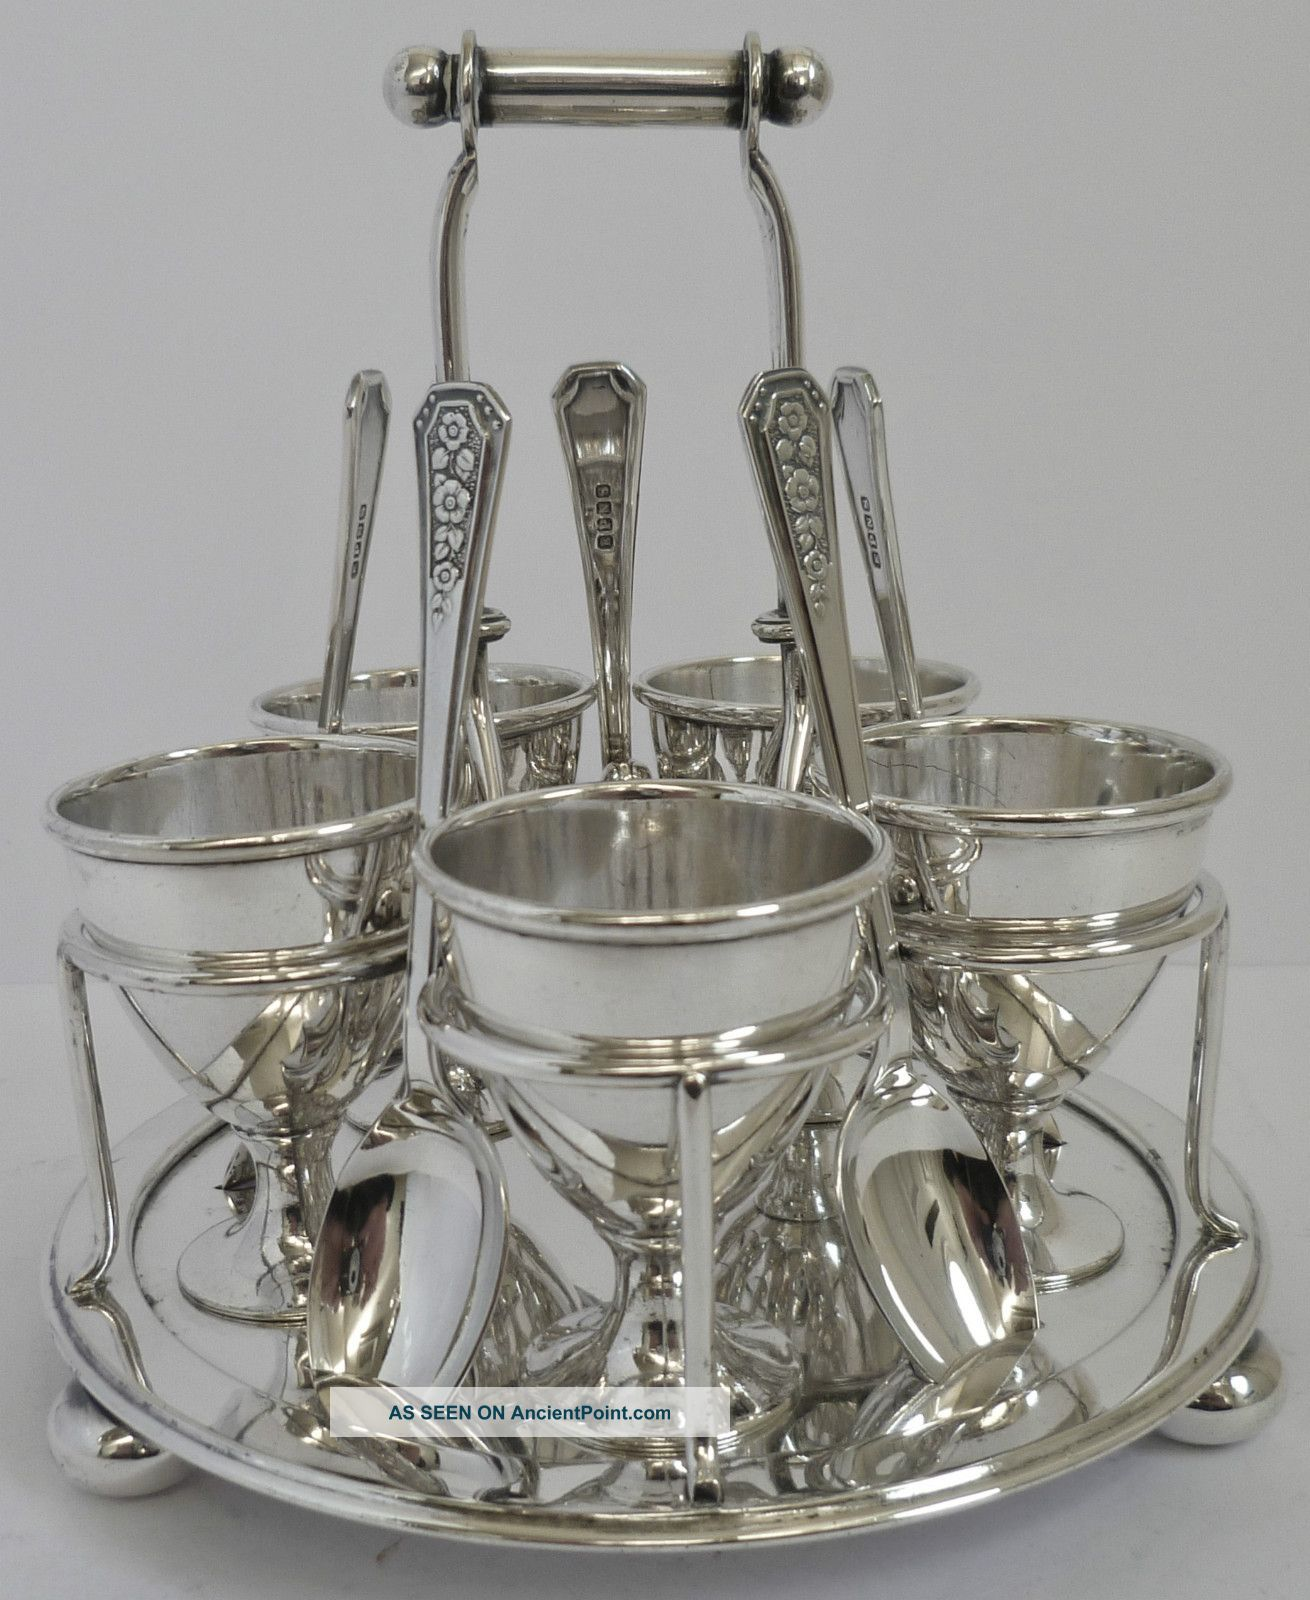 Silver Plated Egg Cup Set C1865 - 1893 Horace Woodward & Co Cruet Holder Cups & Goblets photo